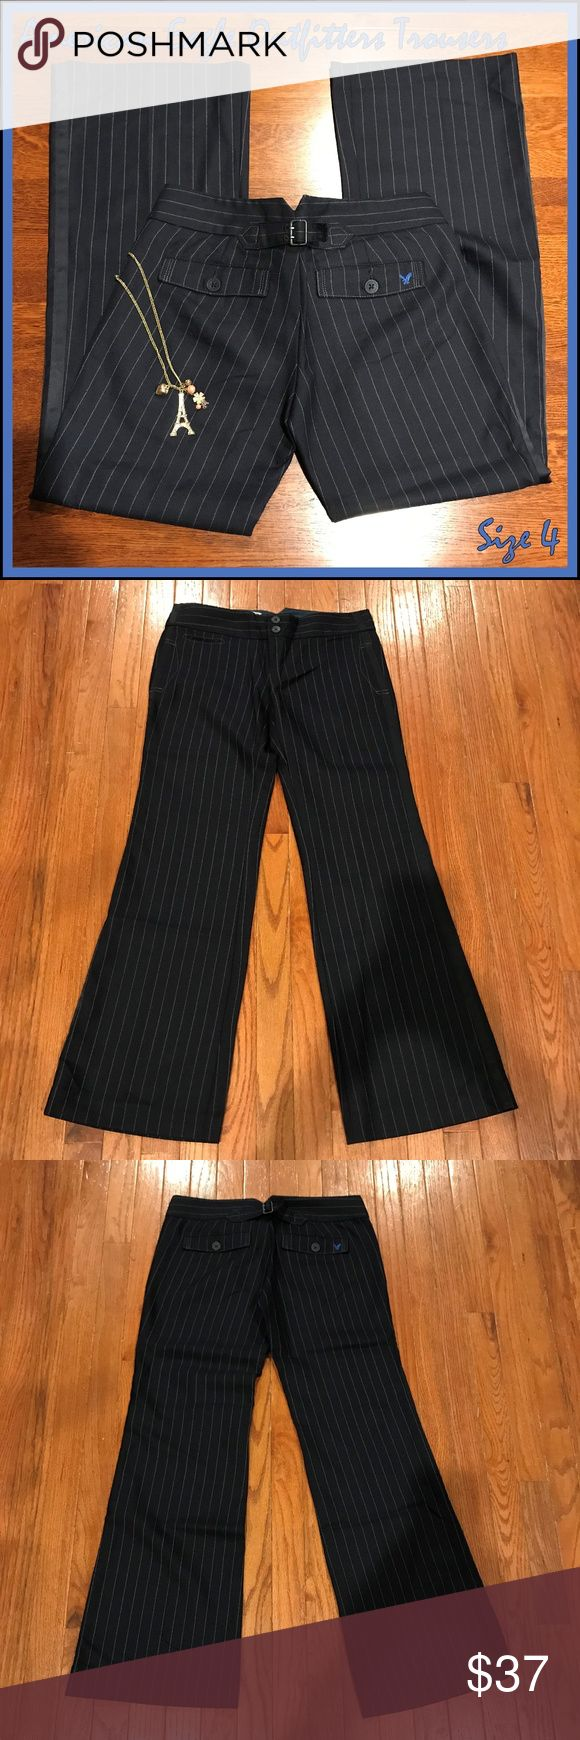 """🐣 American Eagle Outfitters Wool-Blend Trousers I love the cute styling, including the back buckle, on these classy AEO wool-blend trousers. They are i EUC and ready to help you take on the world in style.  Measurements:  •Waist, laying flat across front: 16.75"""" •Inseam: 31.75"""" •Rise: 8""""  From a smoke-free and happy-to-bundle closet.  The necklace is available in a separate listing.   No trades or transactions outside of Poshmark. [T224] American Eagle Outfitters Pants Trousers"""